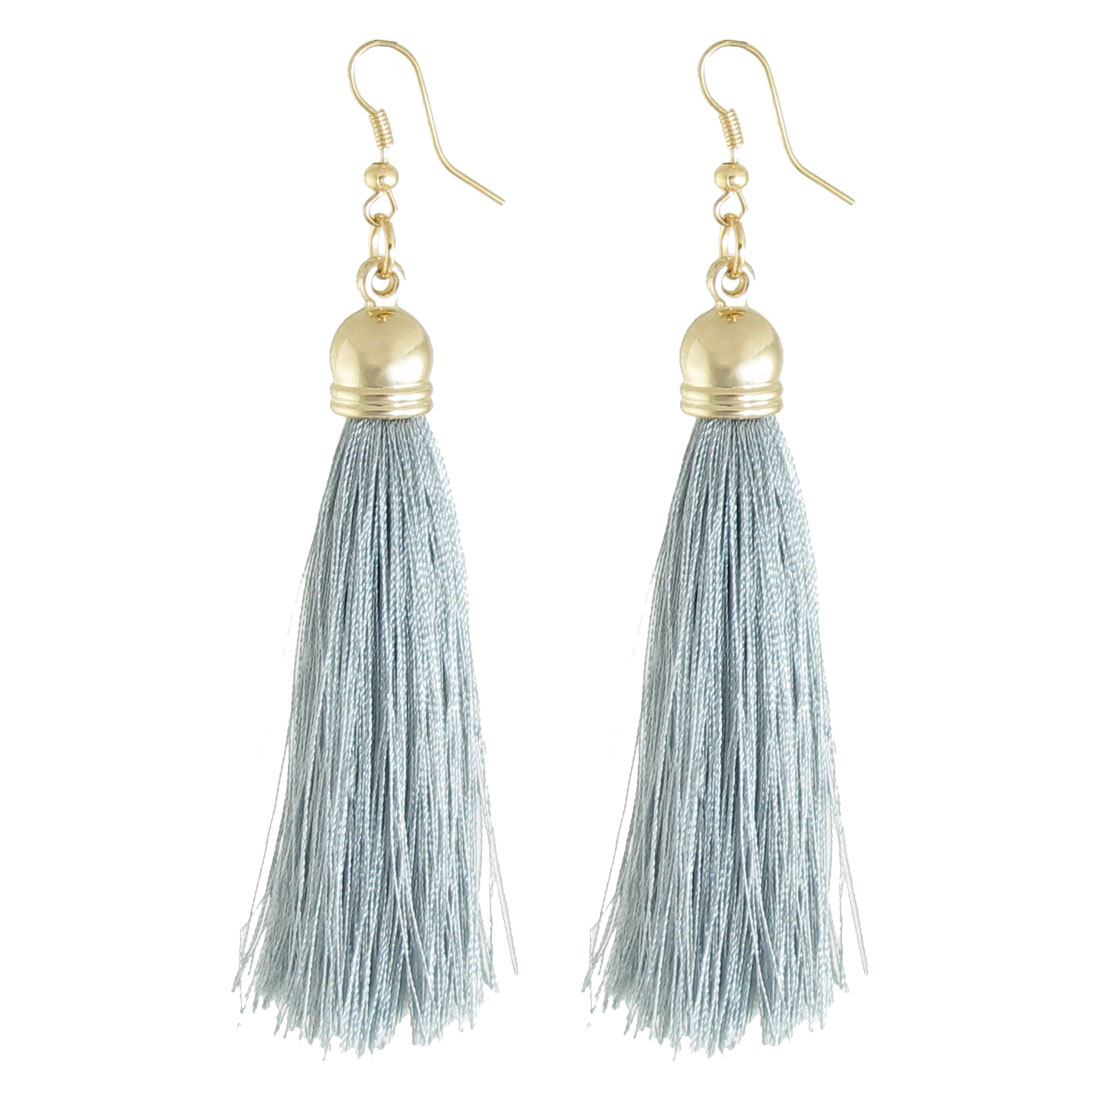 Woman Decoration Nylon Tassel Pendant Dangler Hook Earrings Light Gray Pair